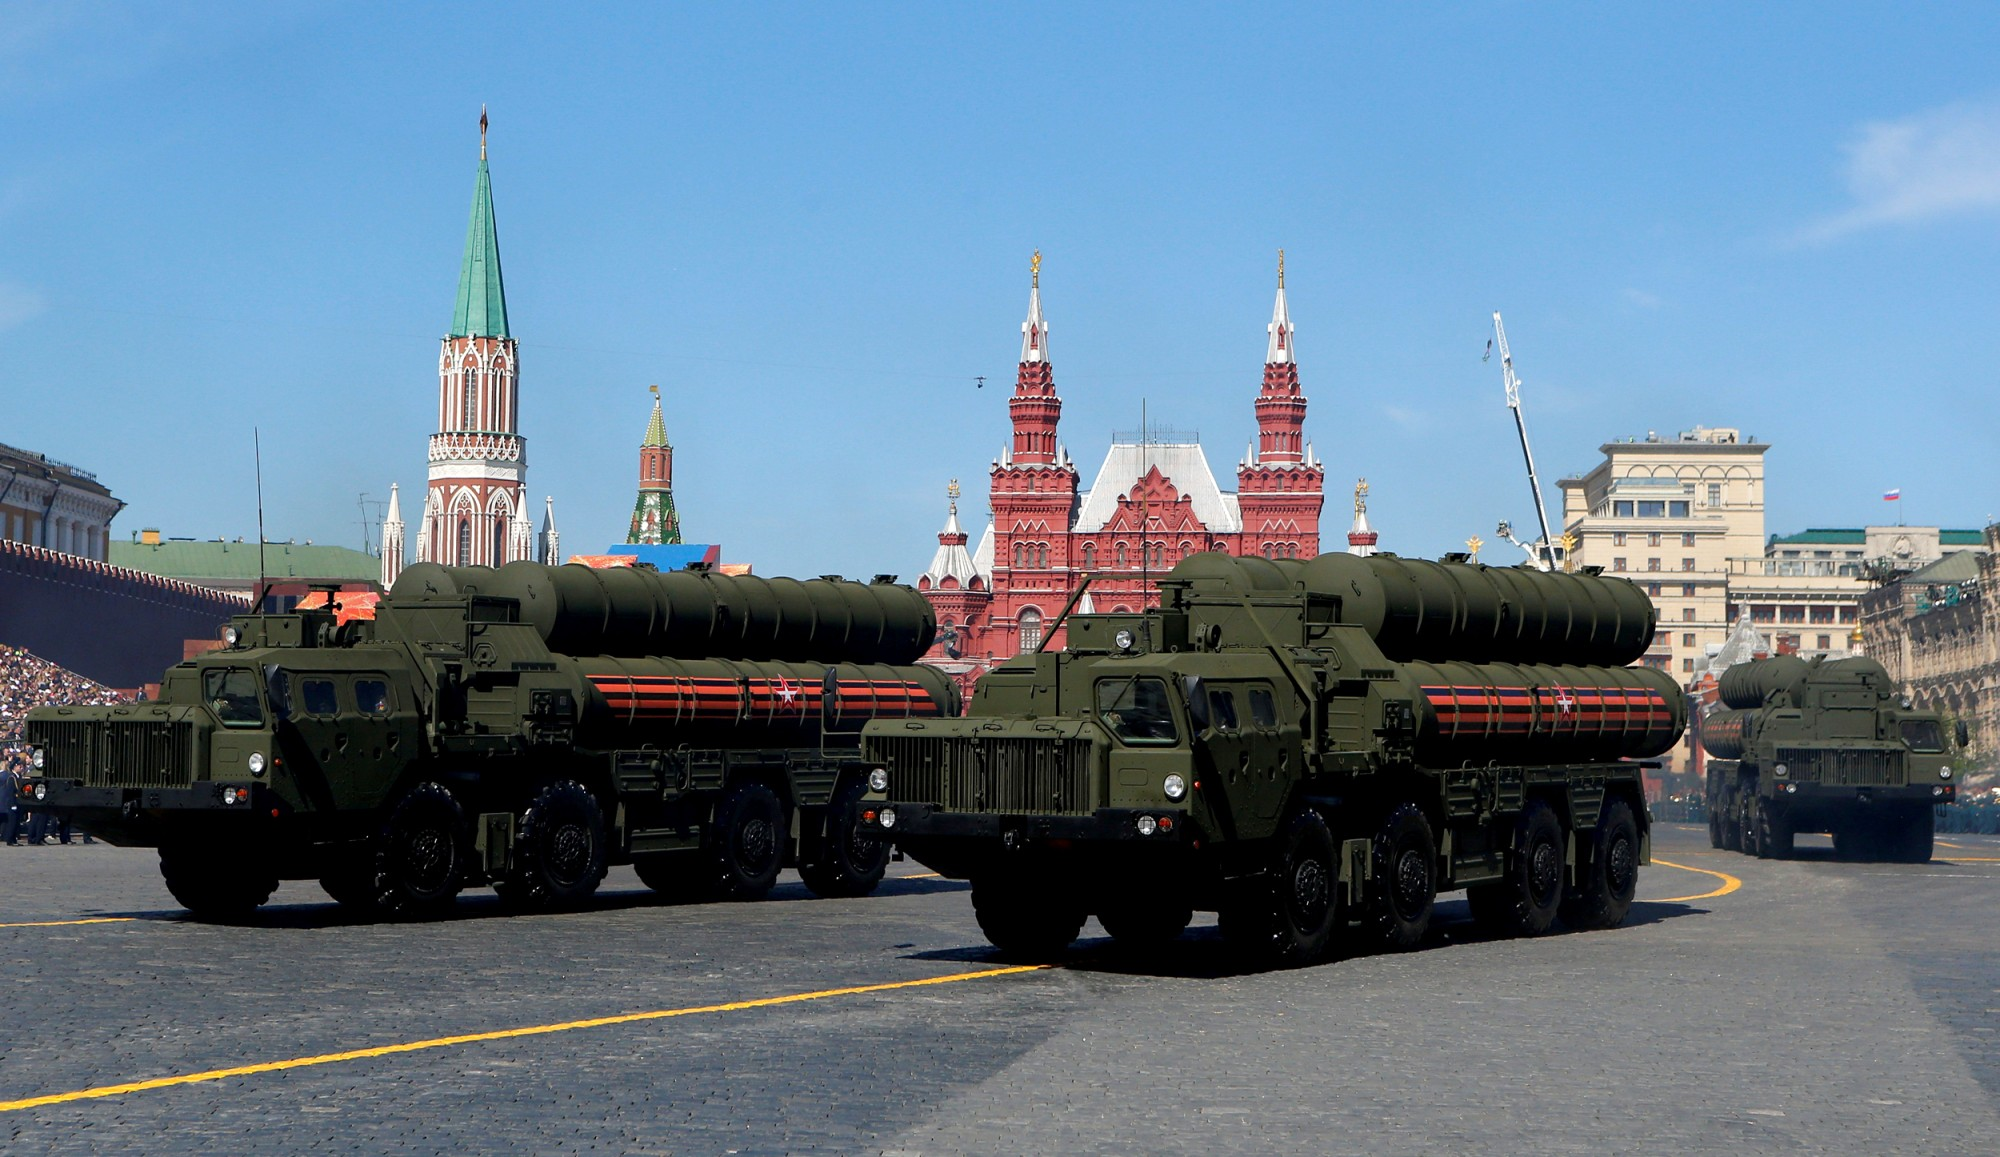 Image: S-400 missile air defense systems during a Victory Day parade in the Red Square in Moscow on May 9, 2018.